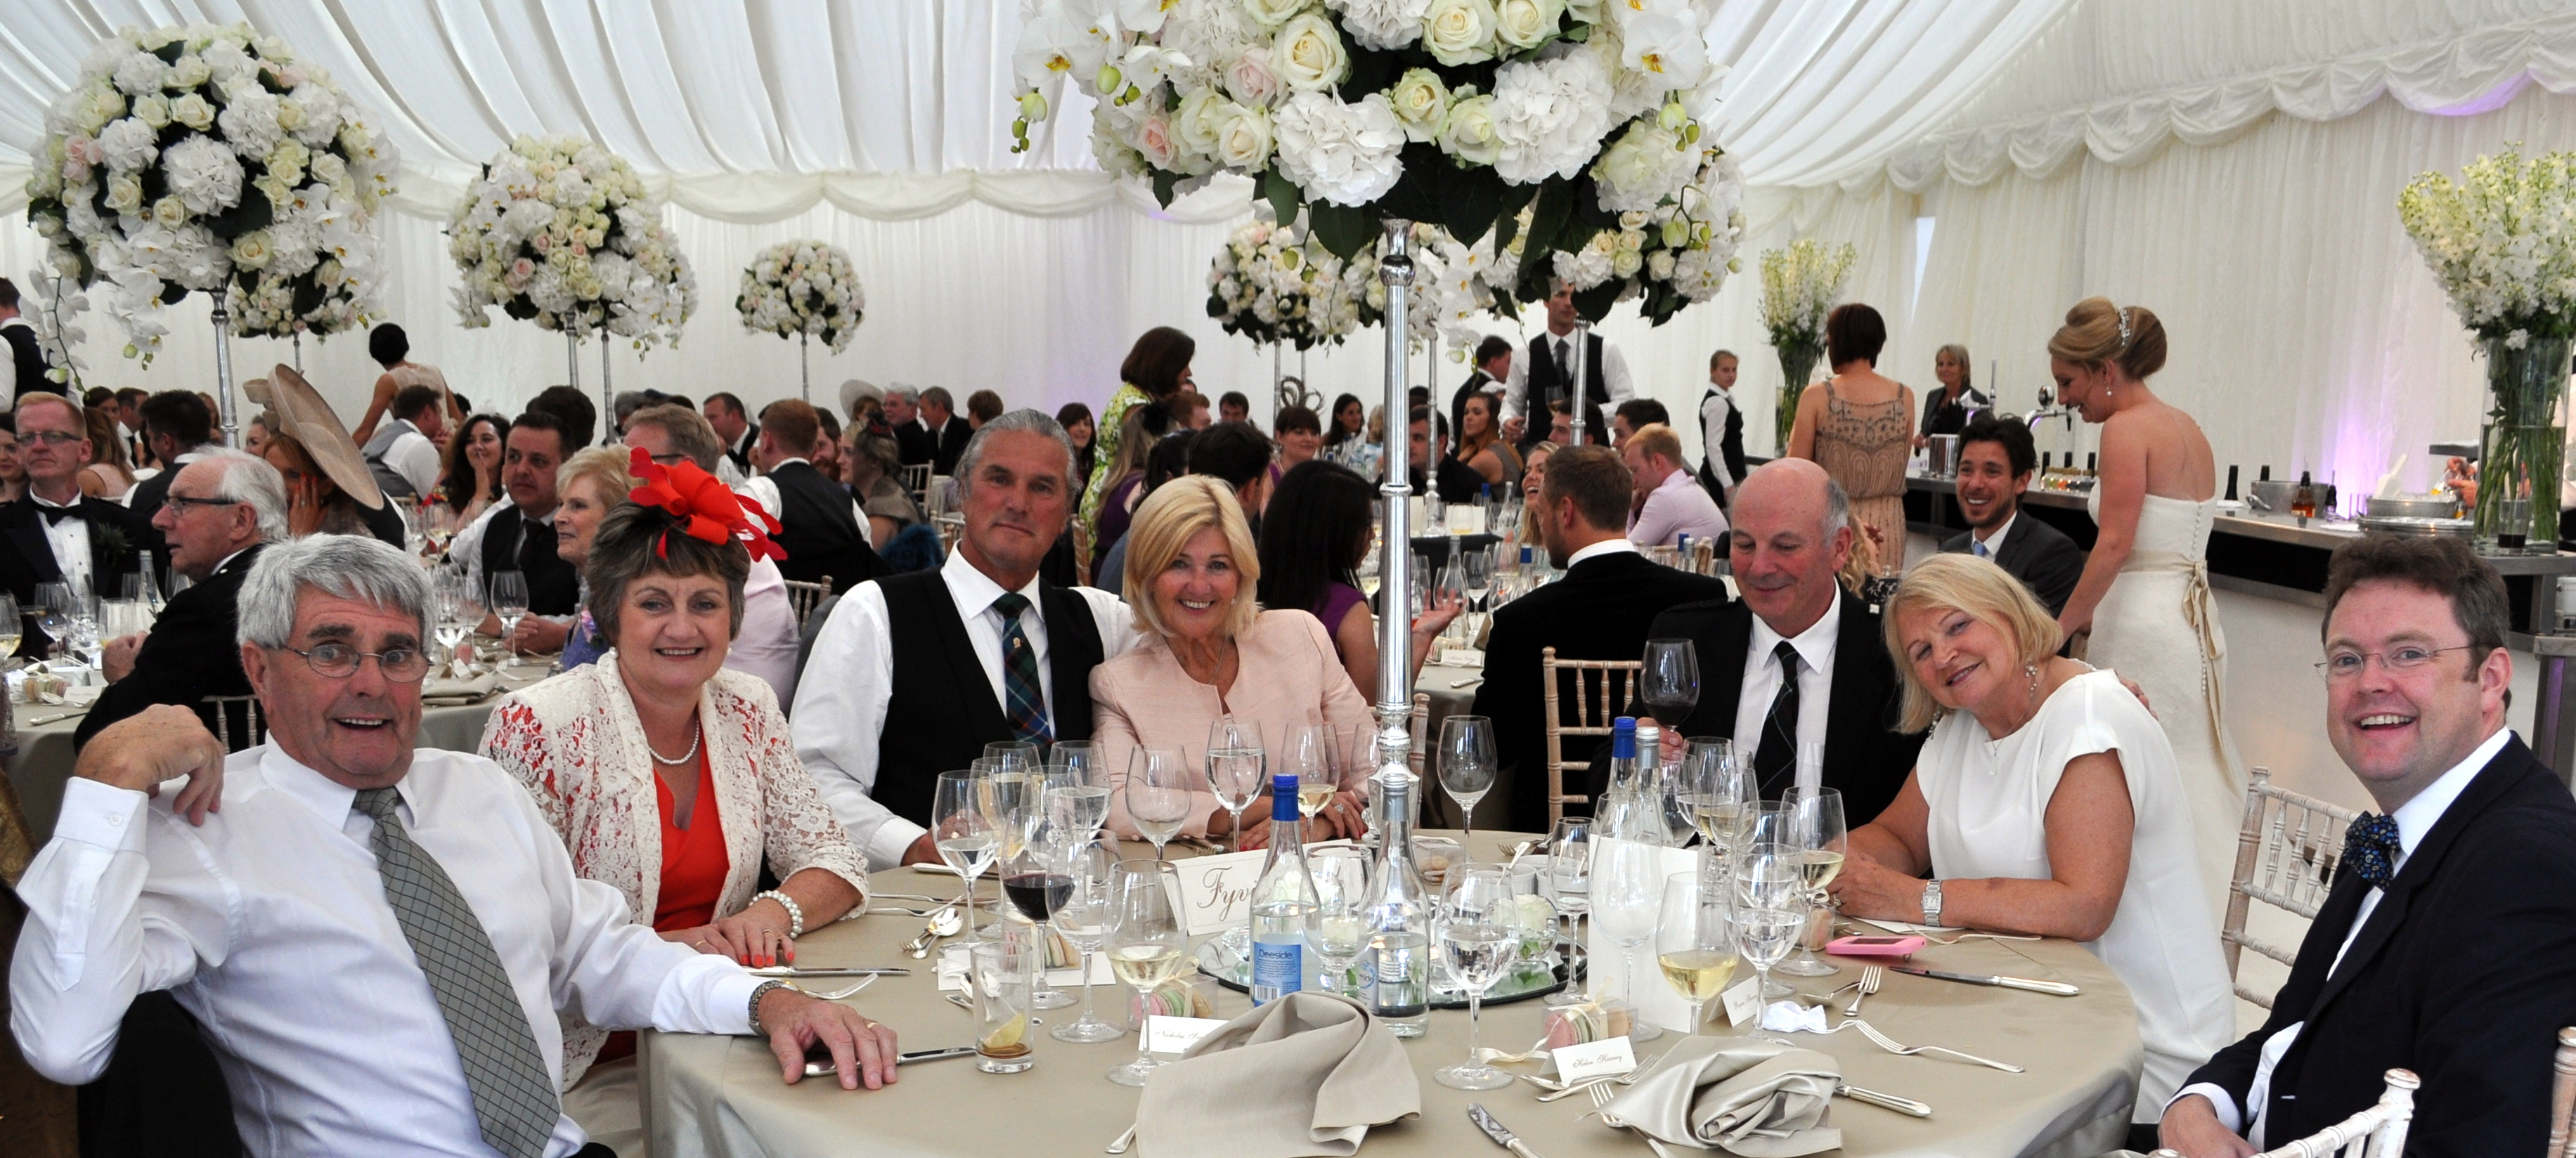 HOSPITALITY: SCOTTISH WEDDING INDUSTRY £25 MILLION FUND